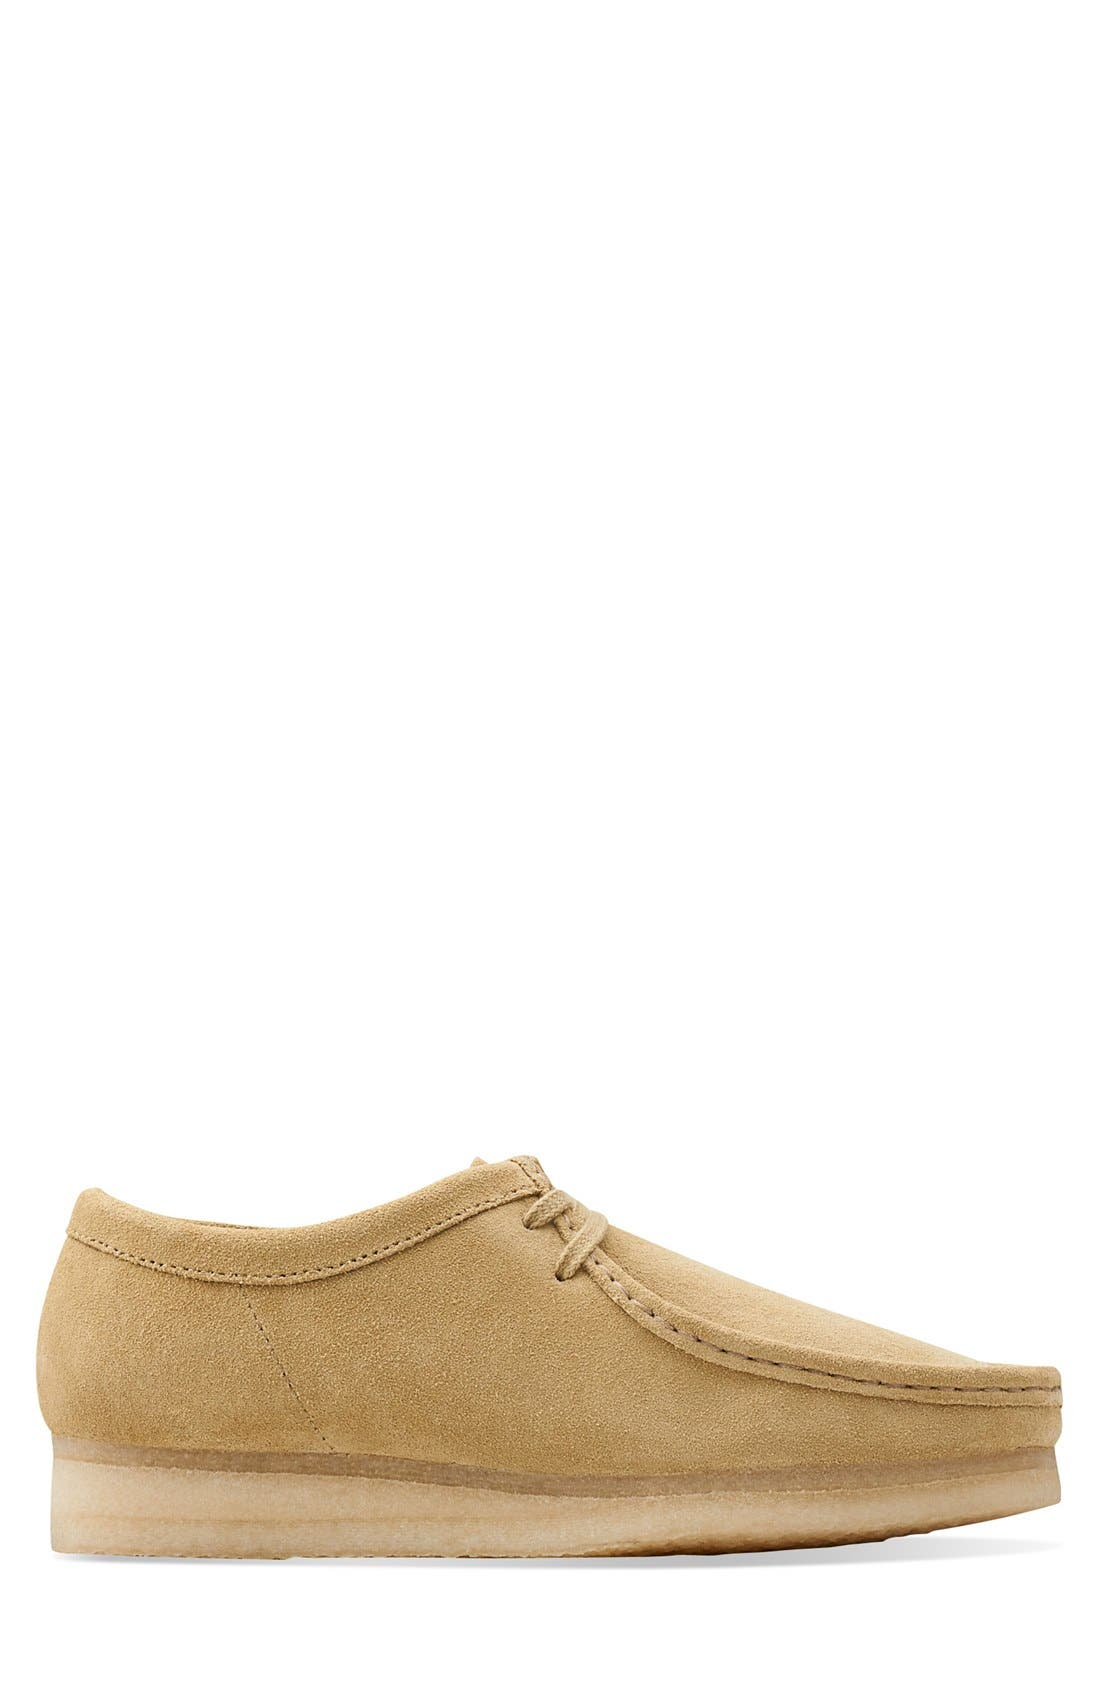 'Wallabee' Moc Toe Derby (Online Only),                             Alternate thumbnail 2, color,                             Maple Suede